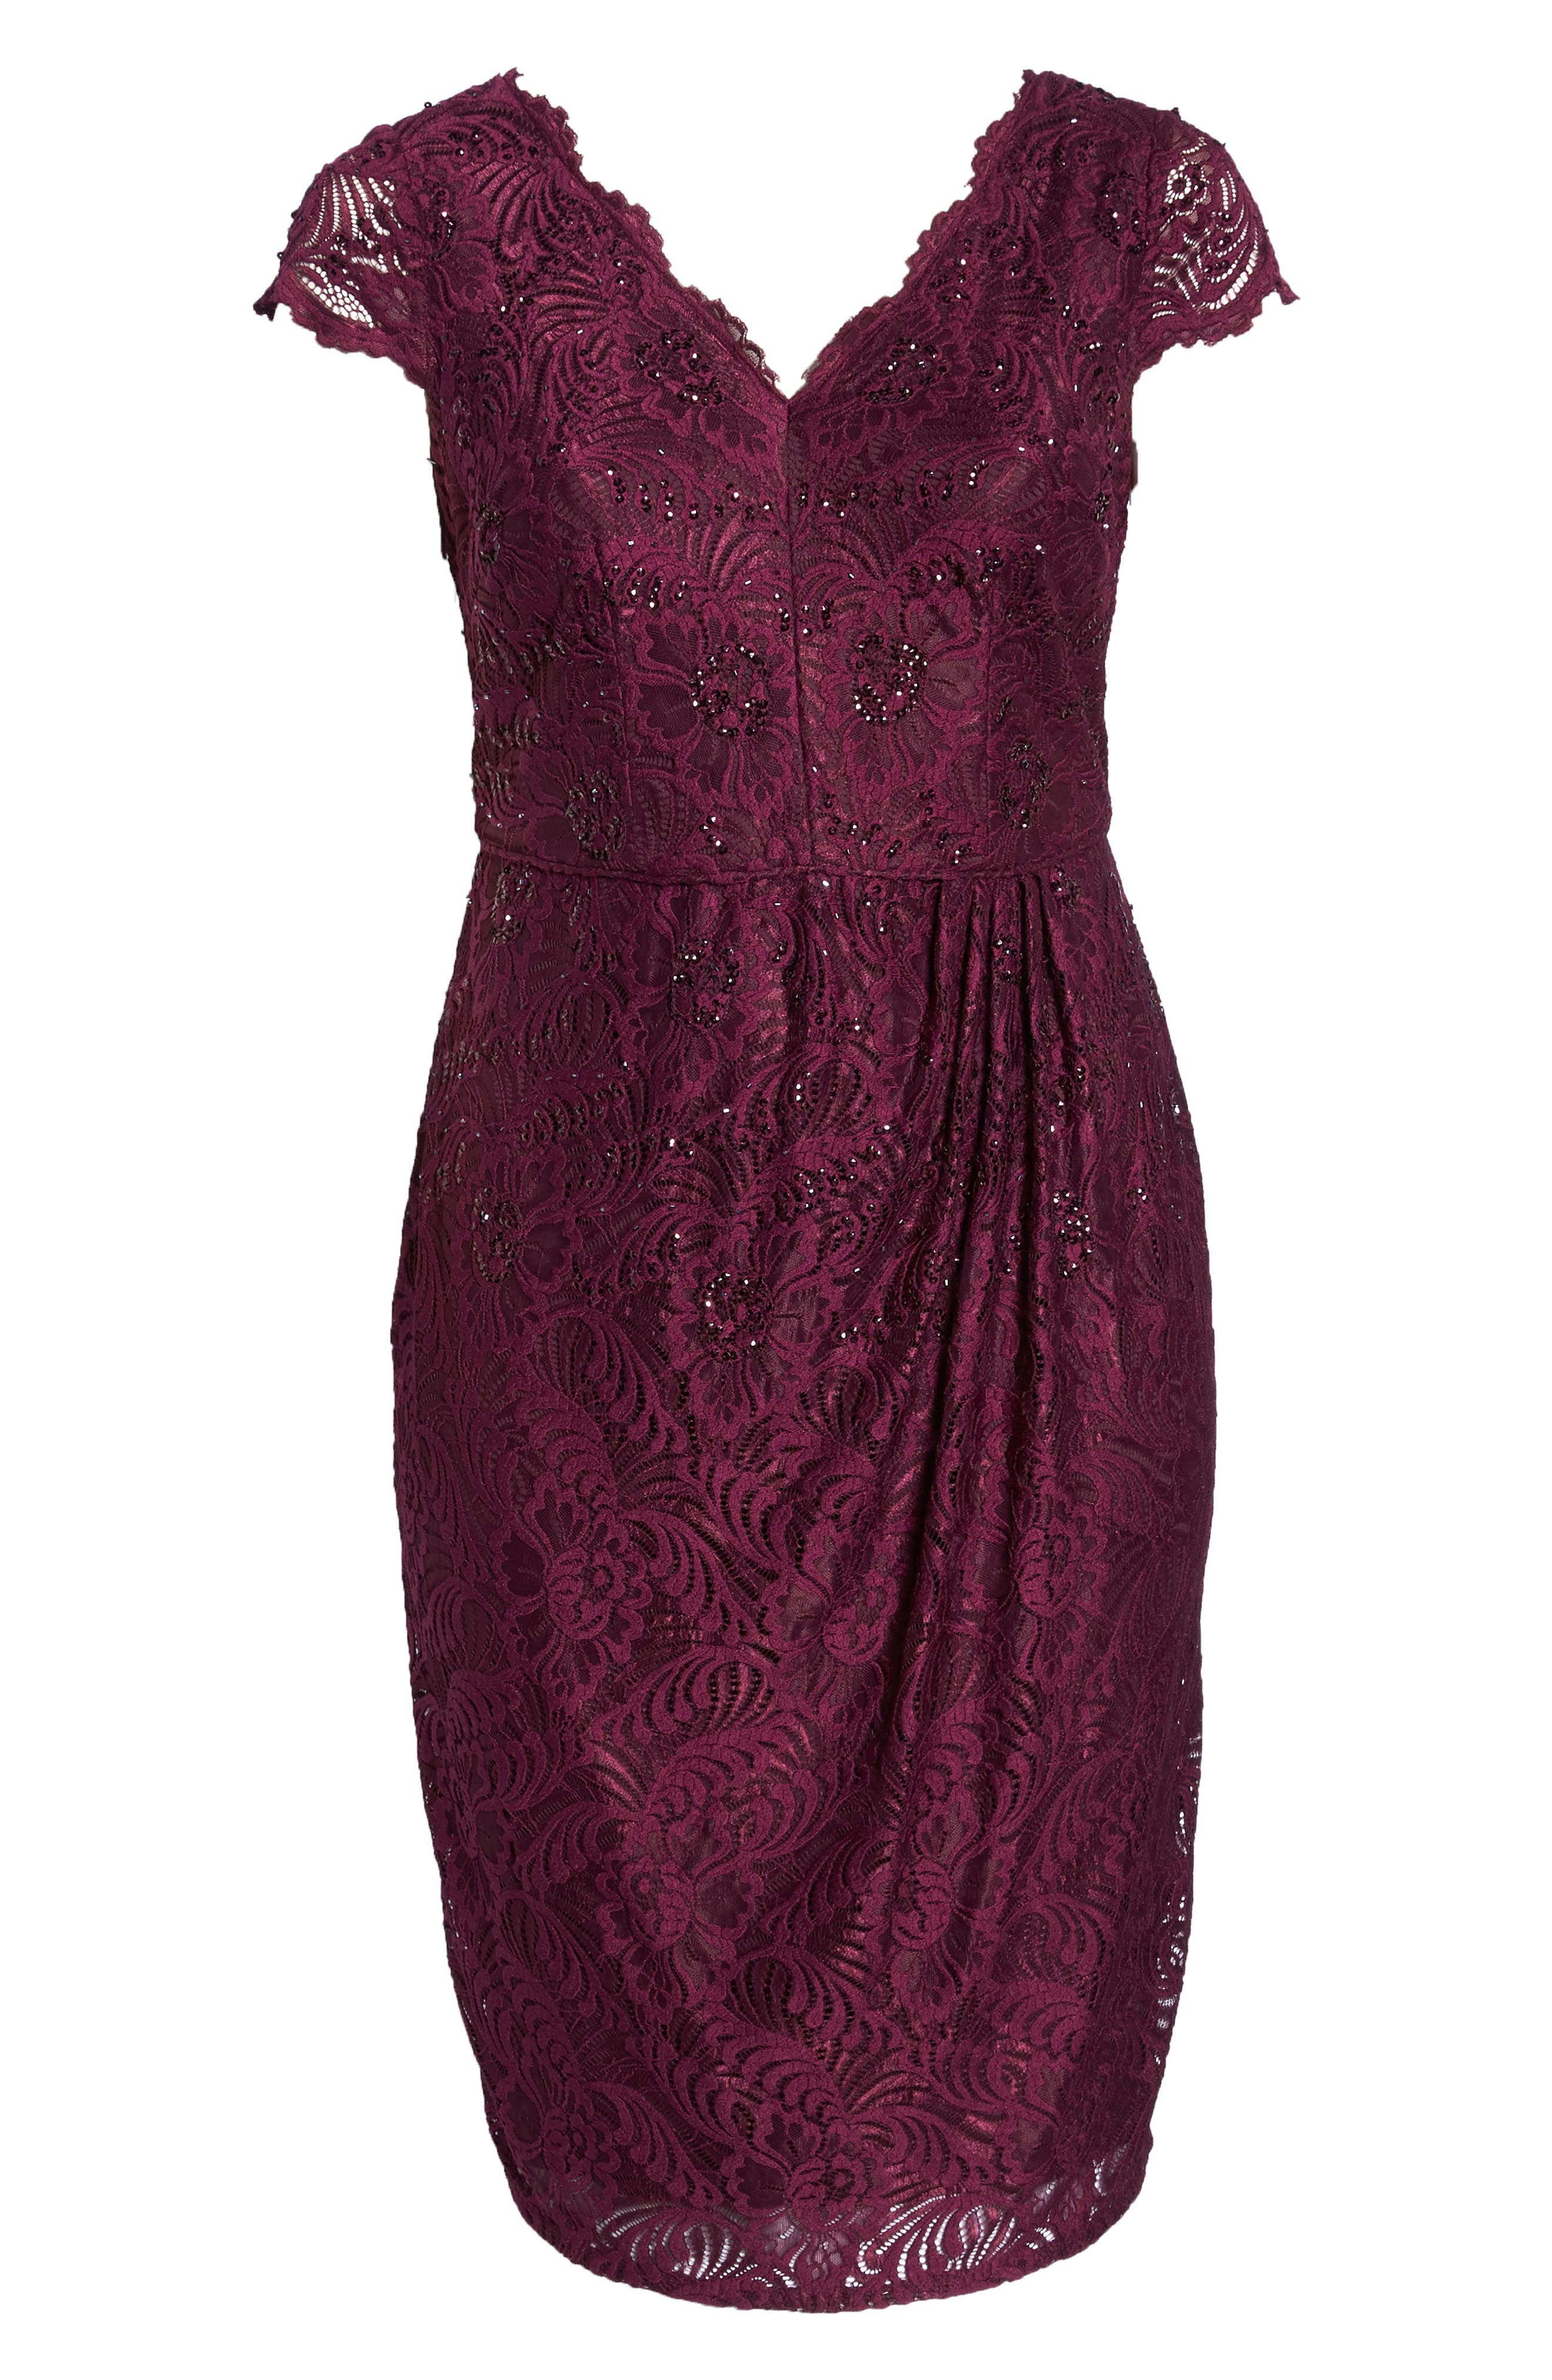 Embellished Stretch Lace Sheath Dress,                             Alternate thumbnail 7, color,                             606